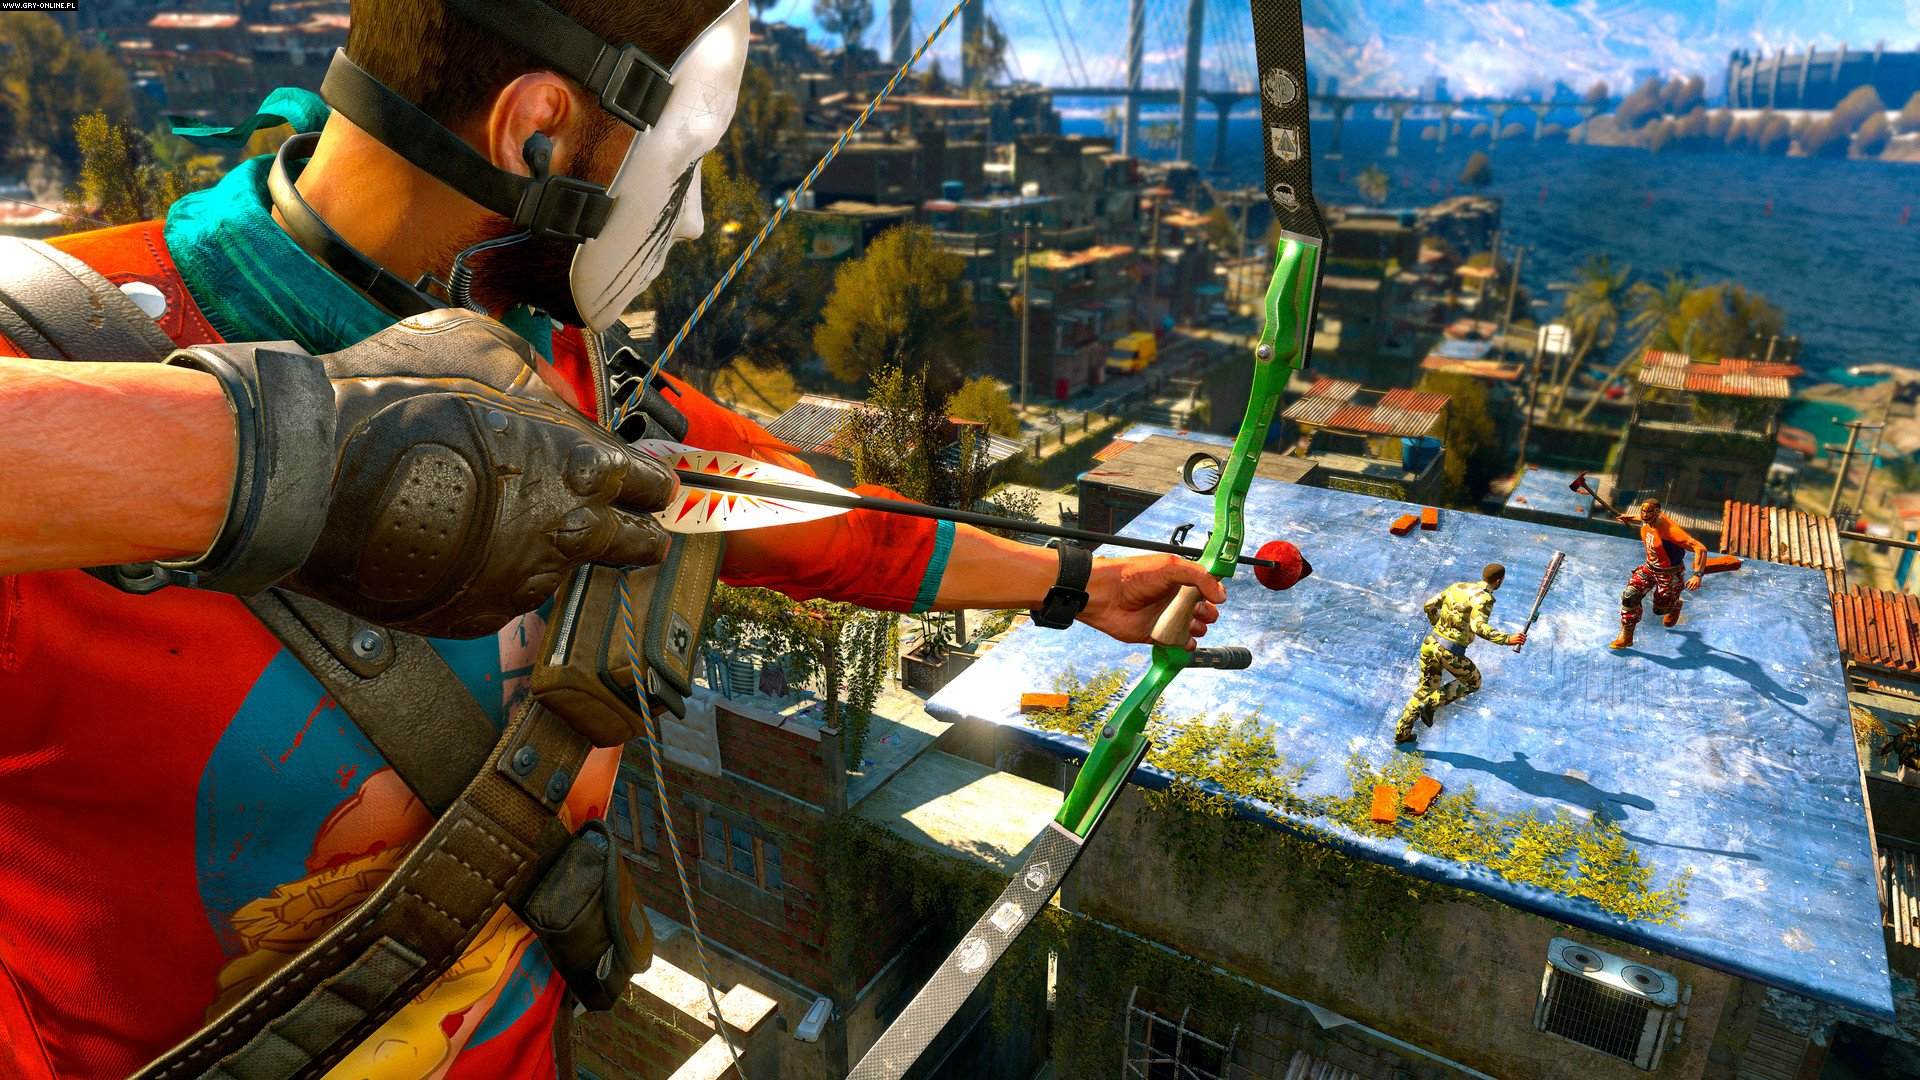 Dying Light: Bad Blood PC, PS4, XONE Games Image 3/5, Techland